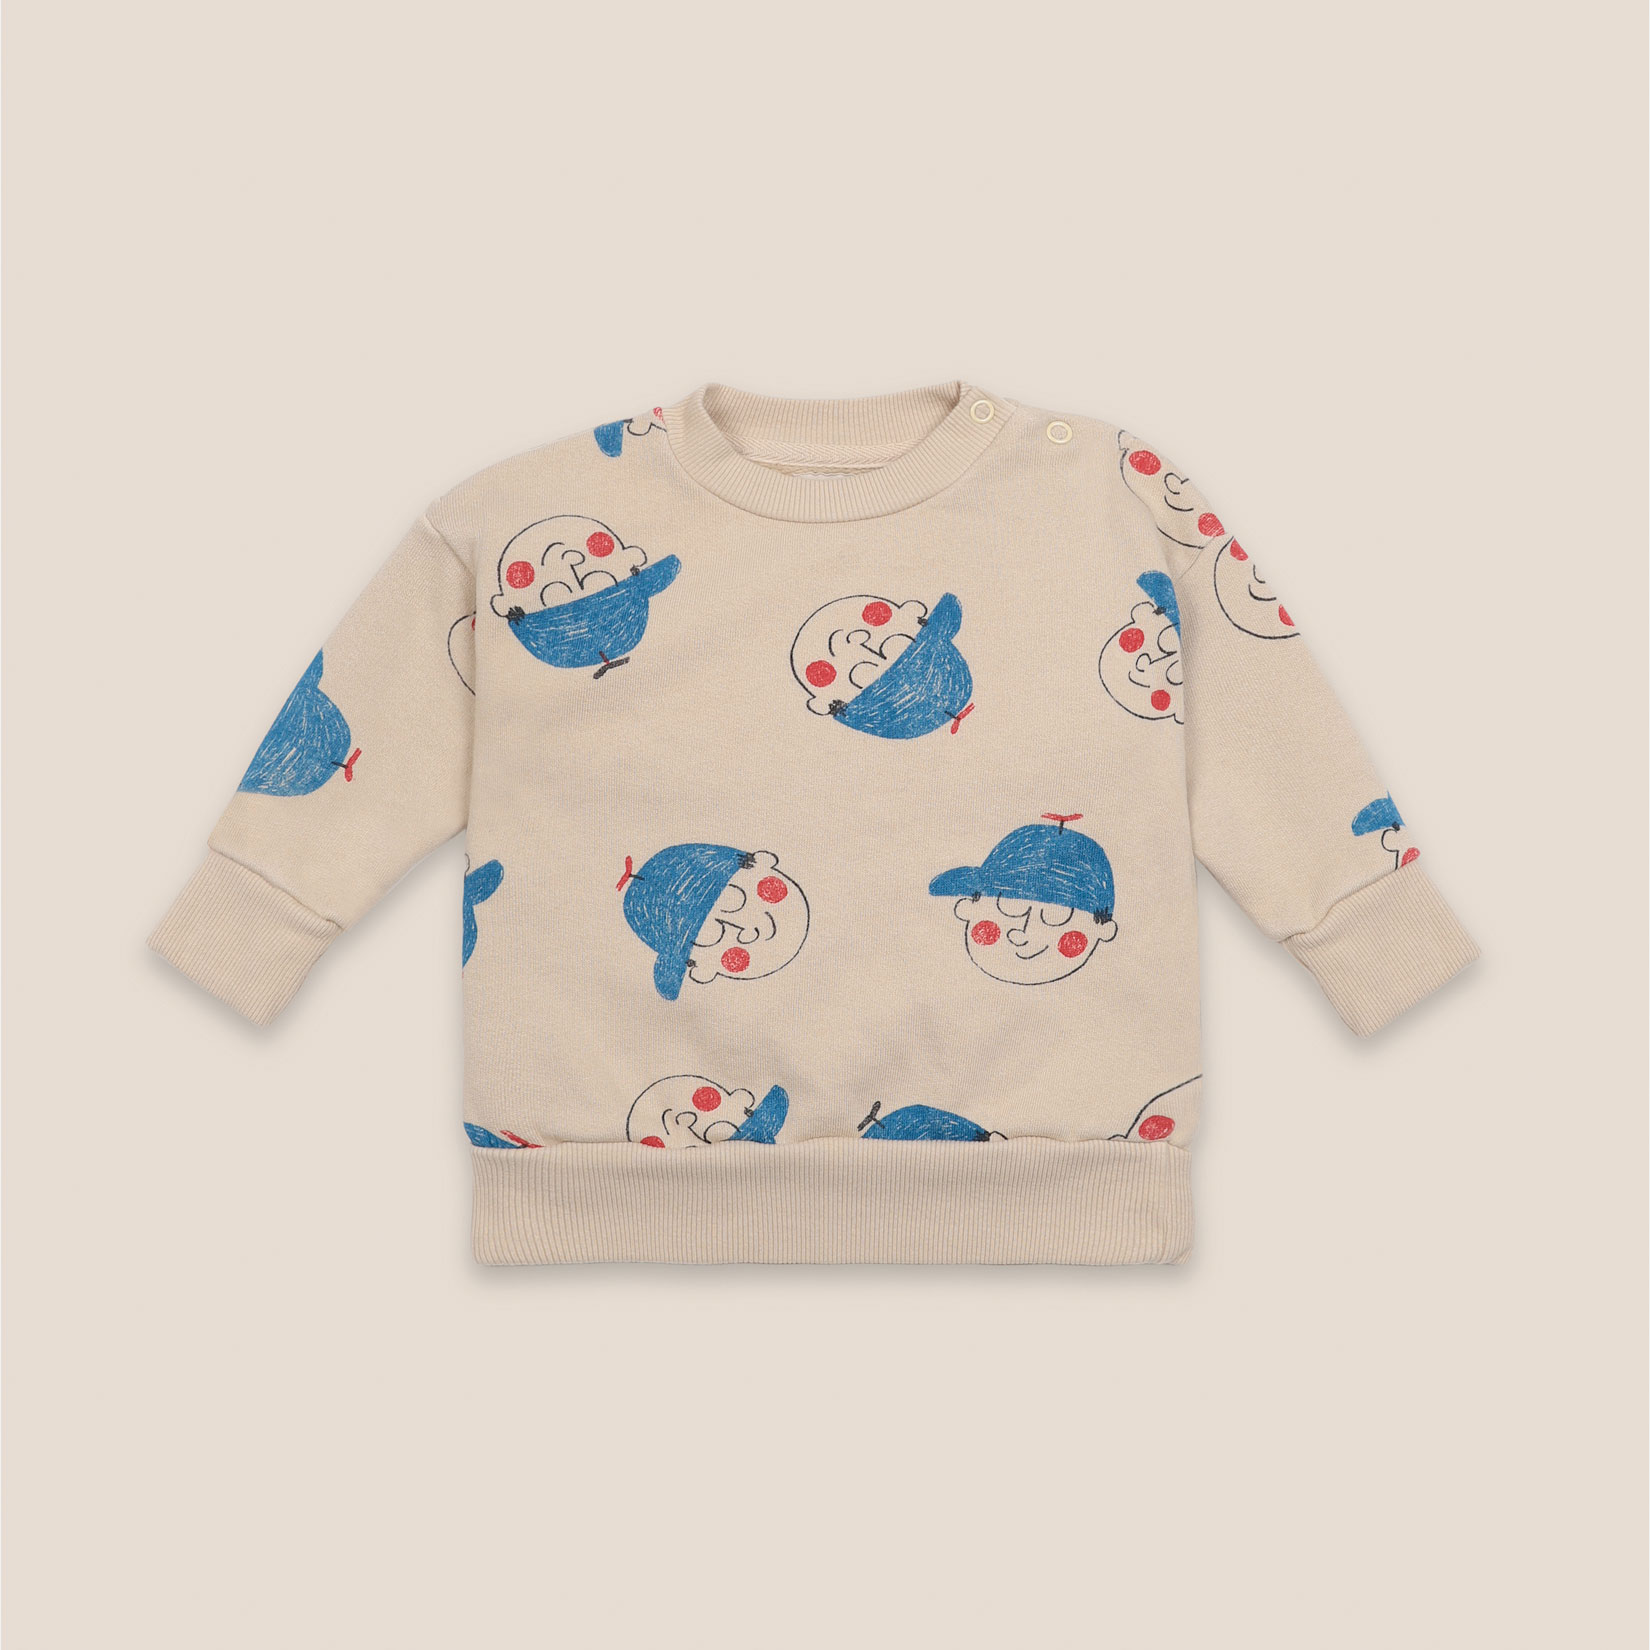 Bobo Choses - Baby Boy All Over Sweatshirt